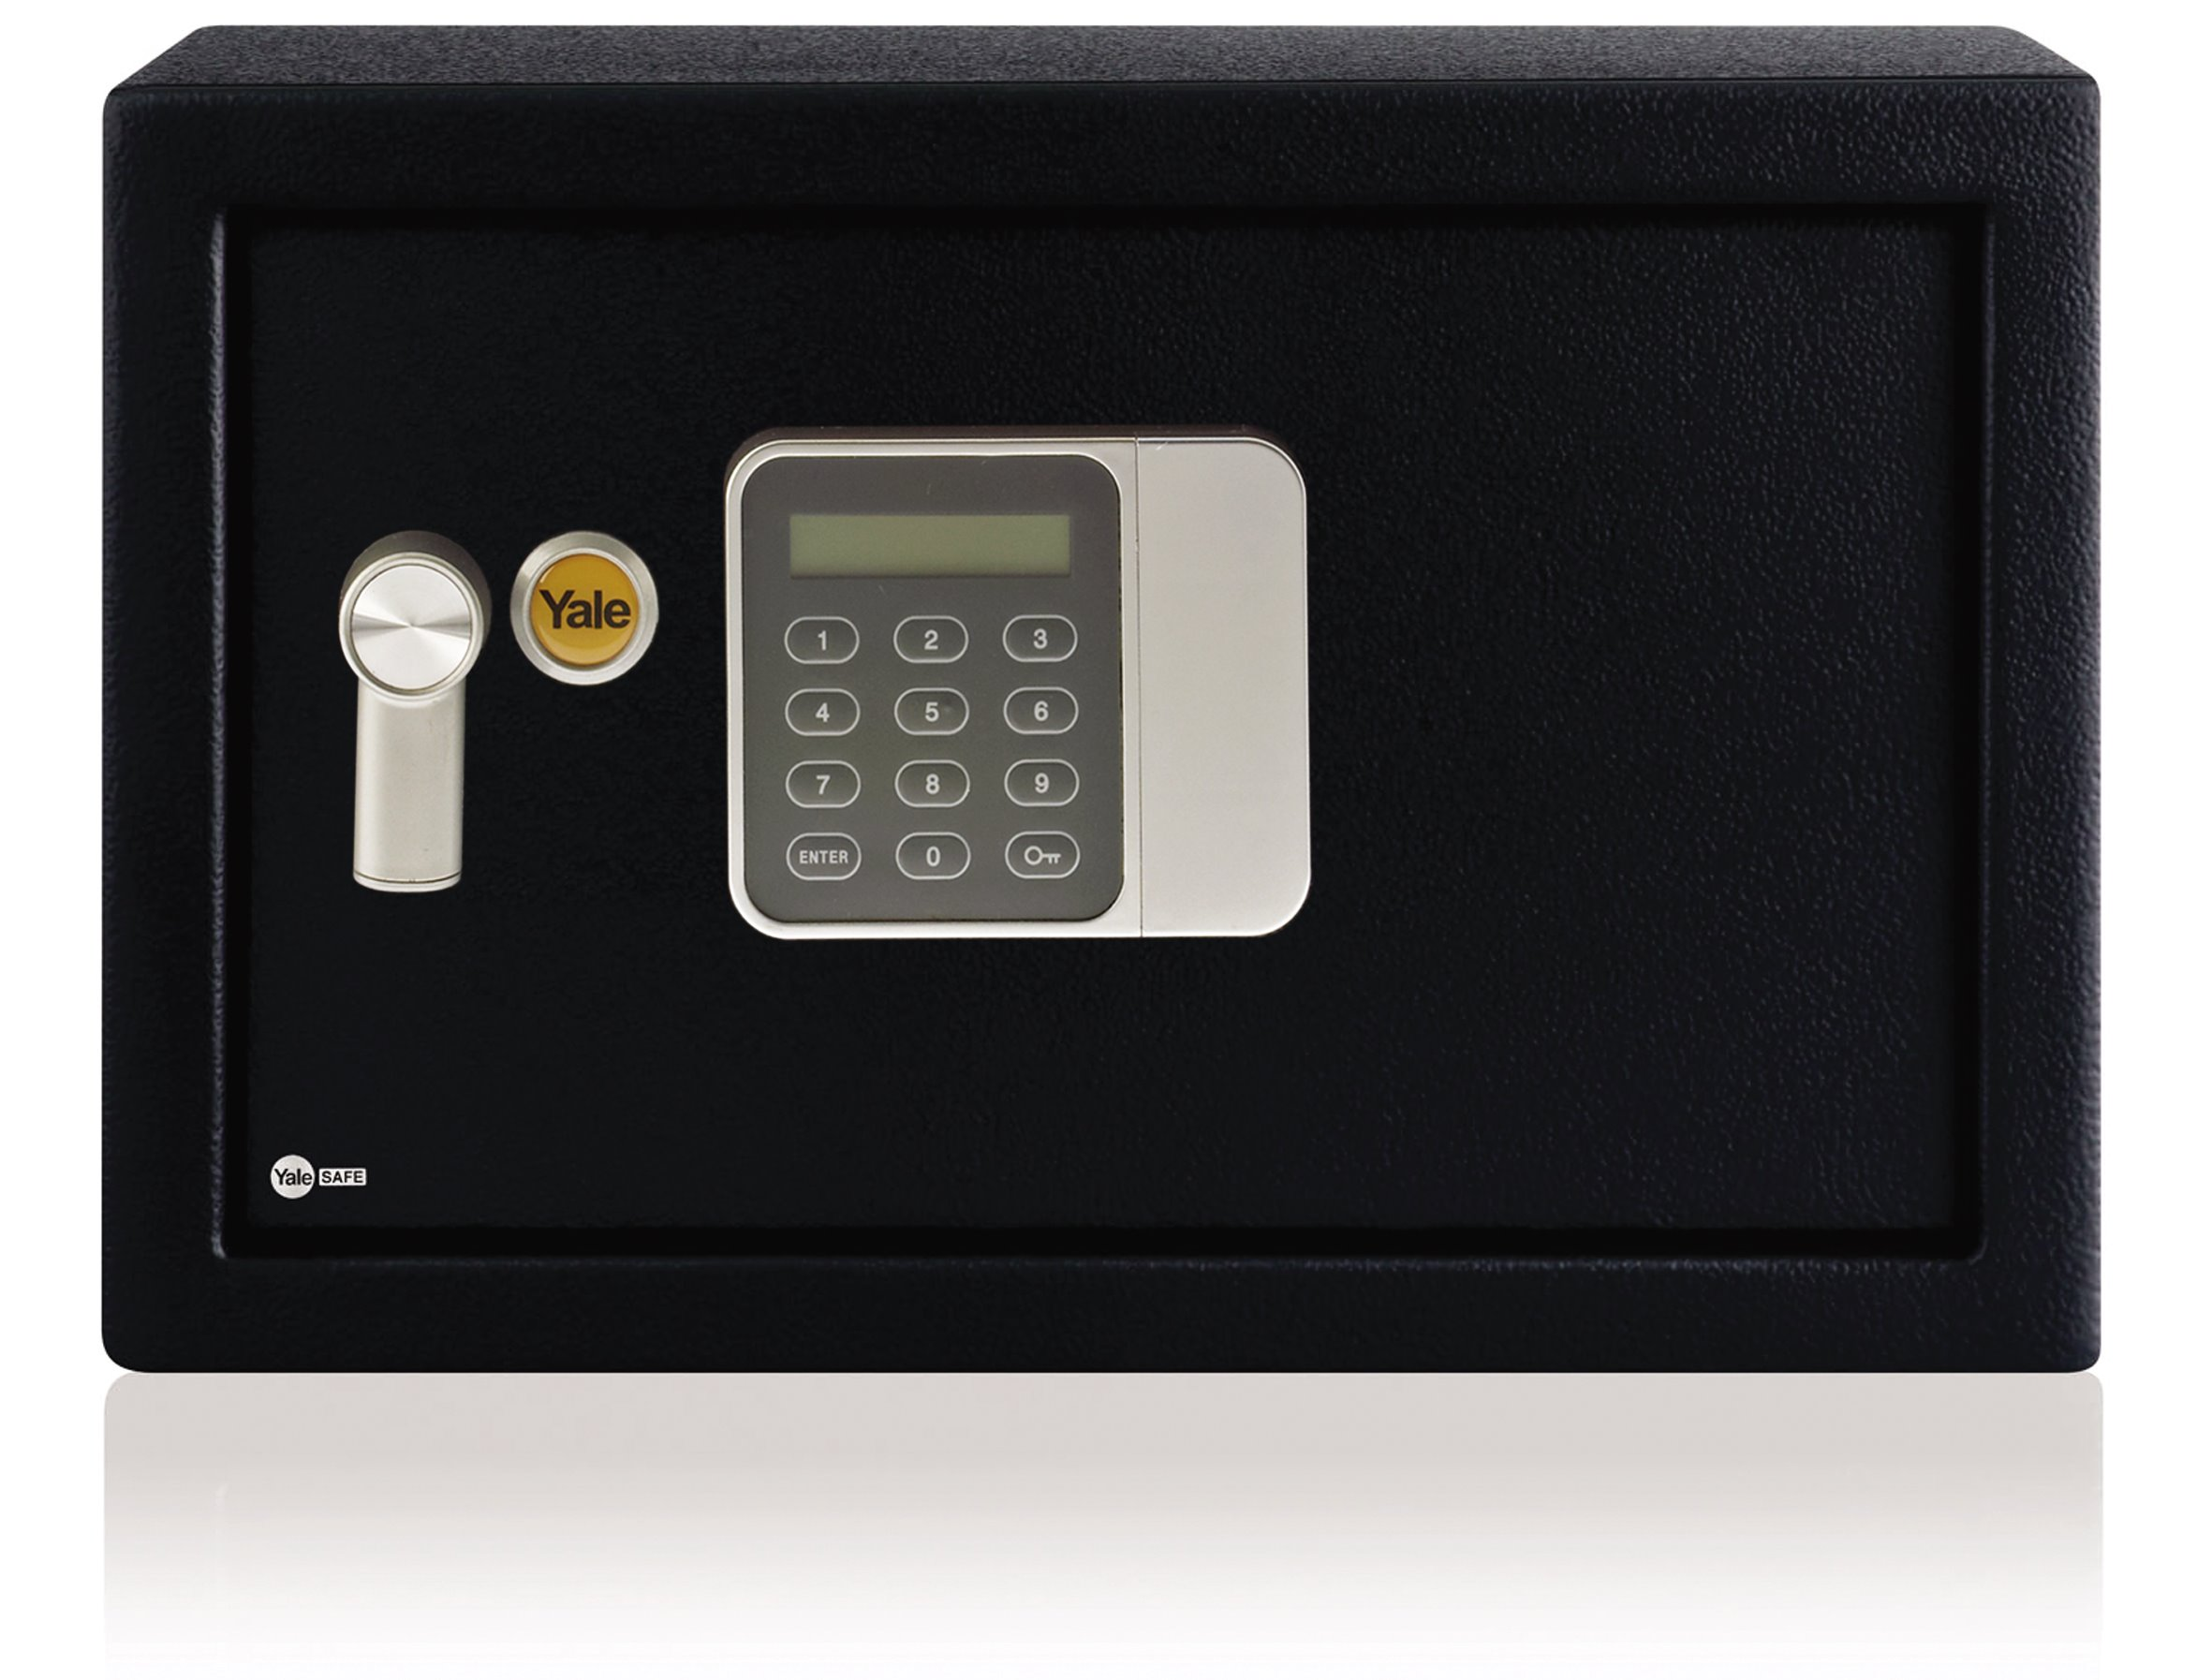 YSG/250/DB1 Guest safe medium